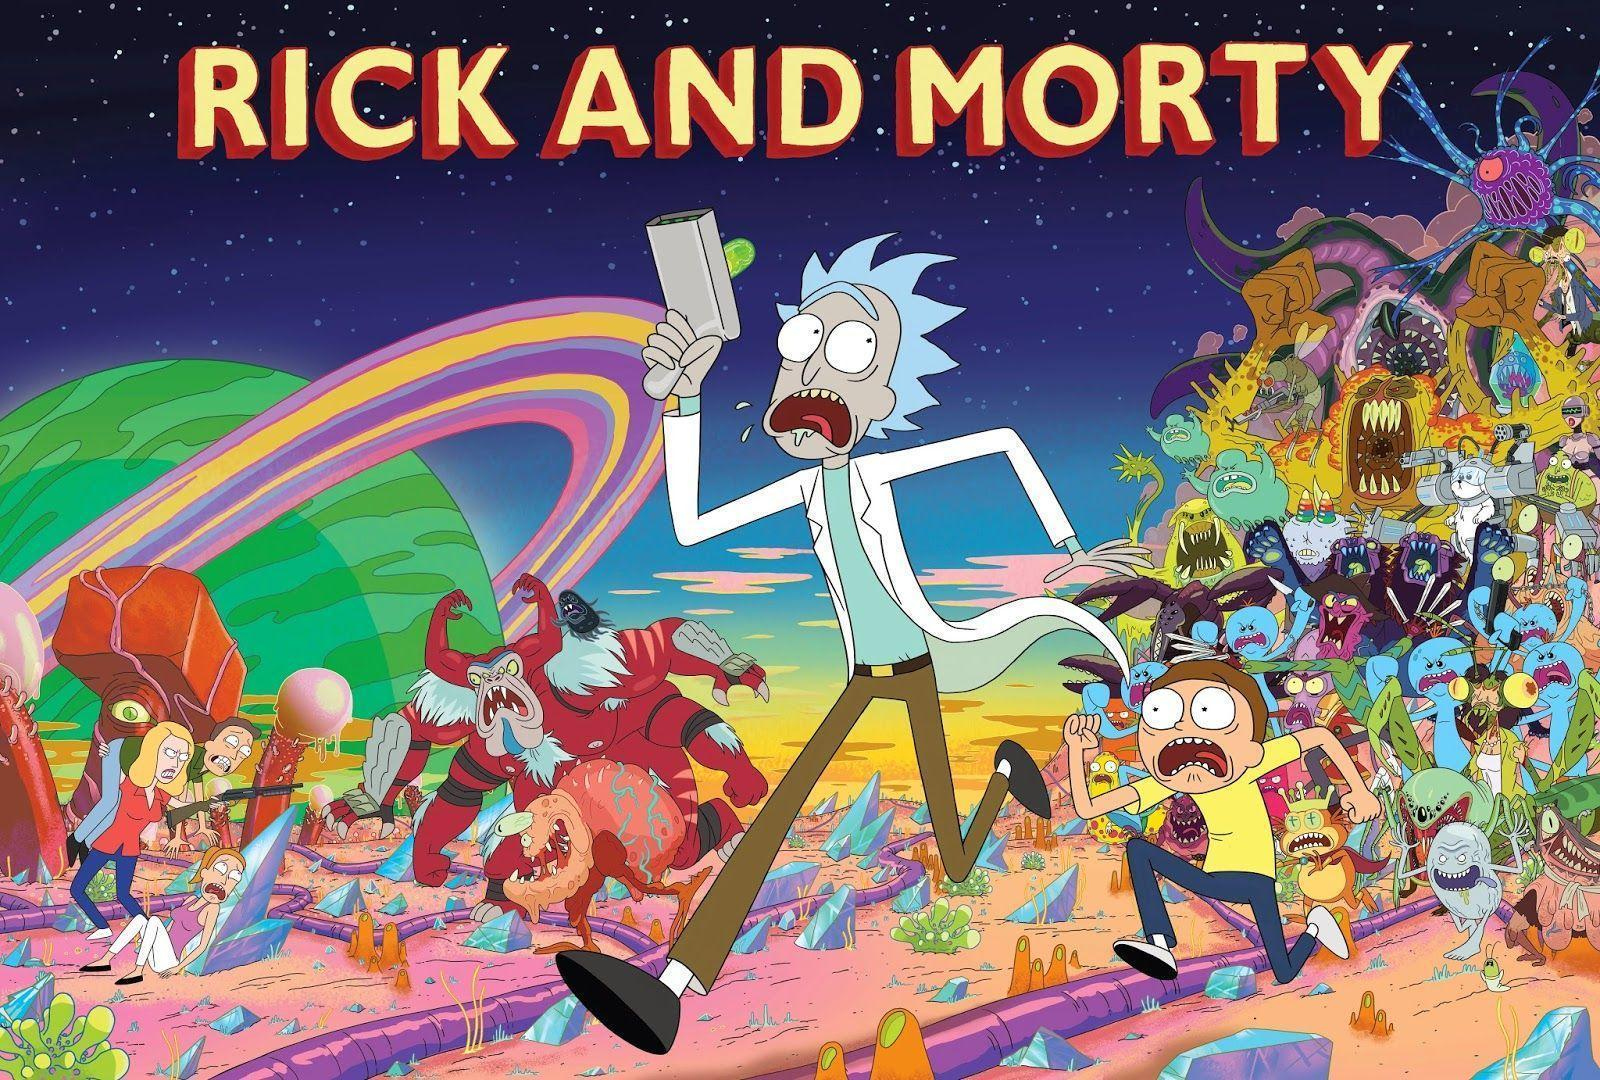 Rick and Morty background 4